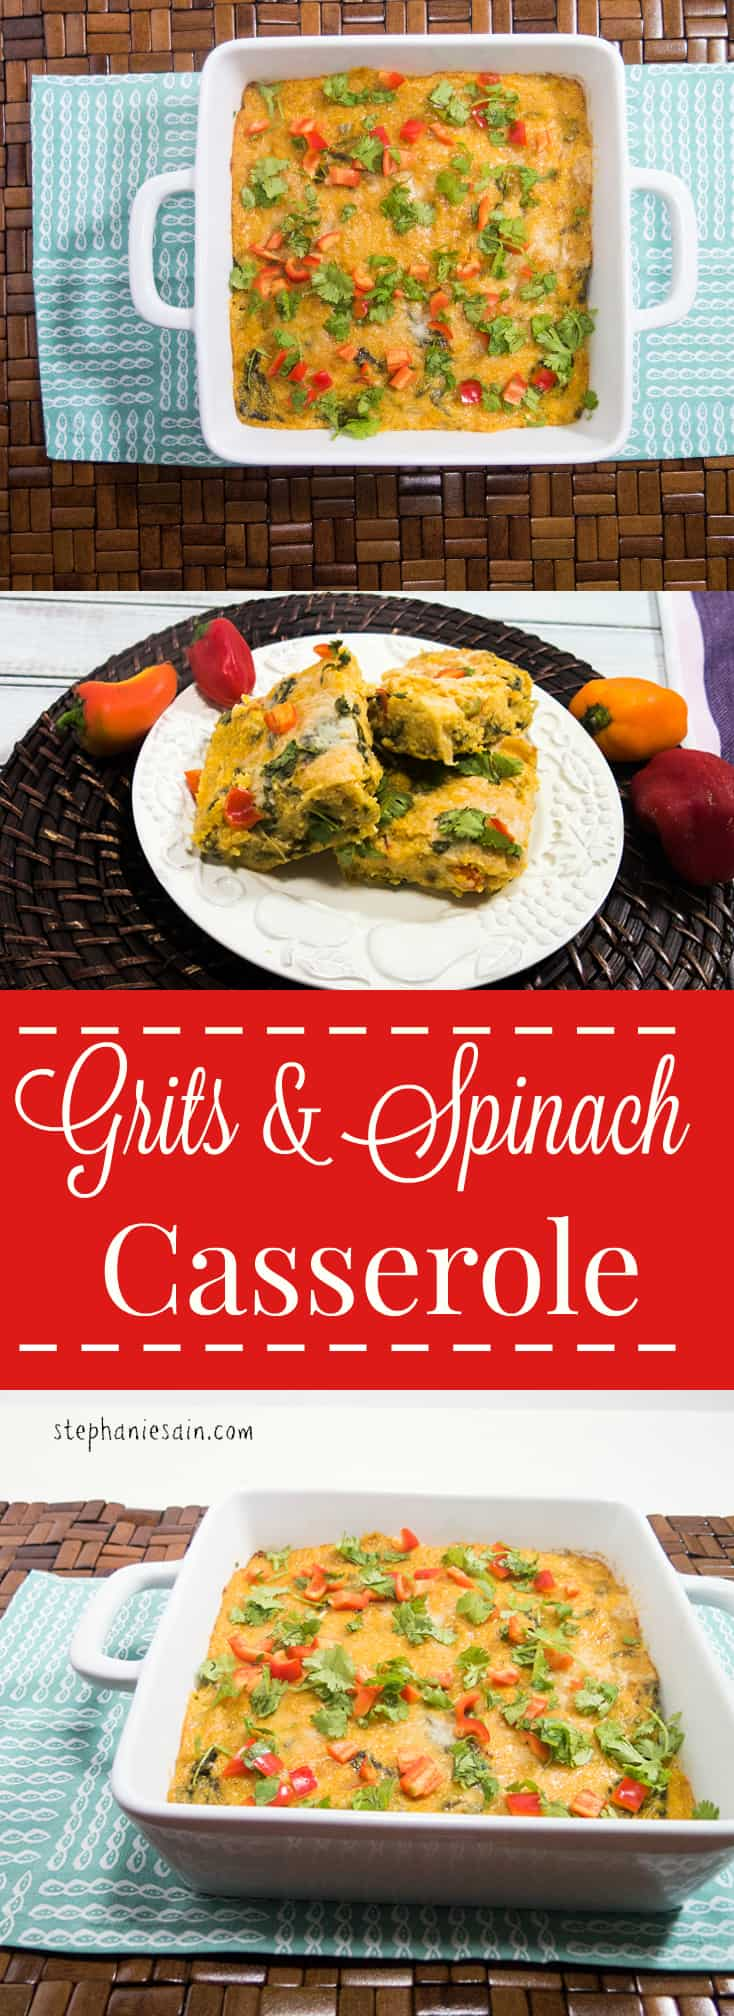 Grits and Spinach Casserole is the perfect make ahead brunch or dinner. Vegetarian and Gluten Free.